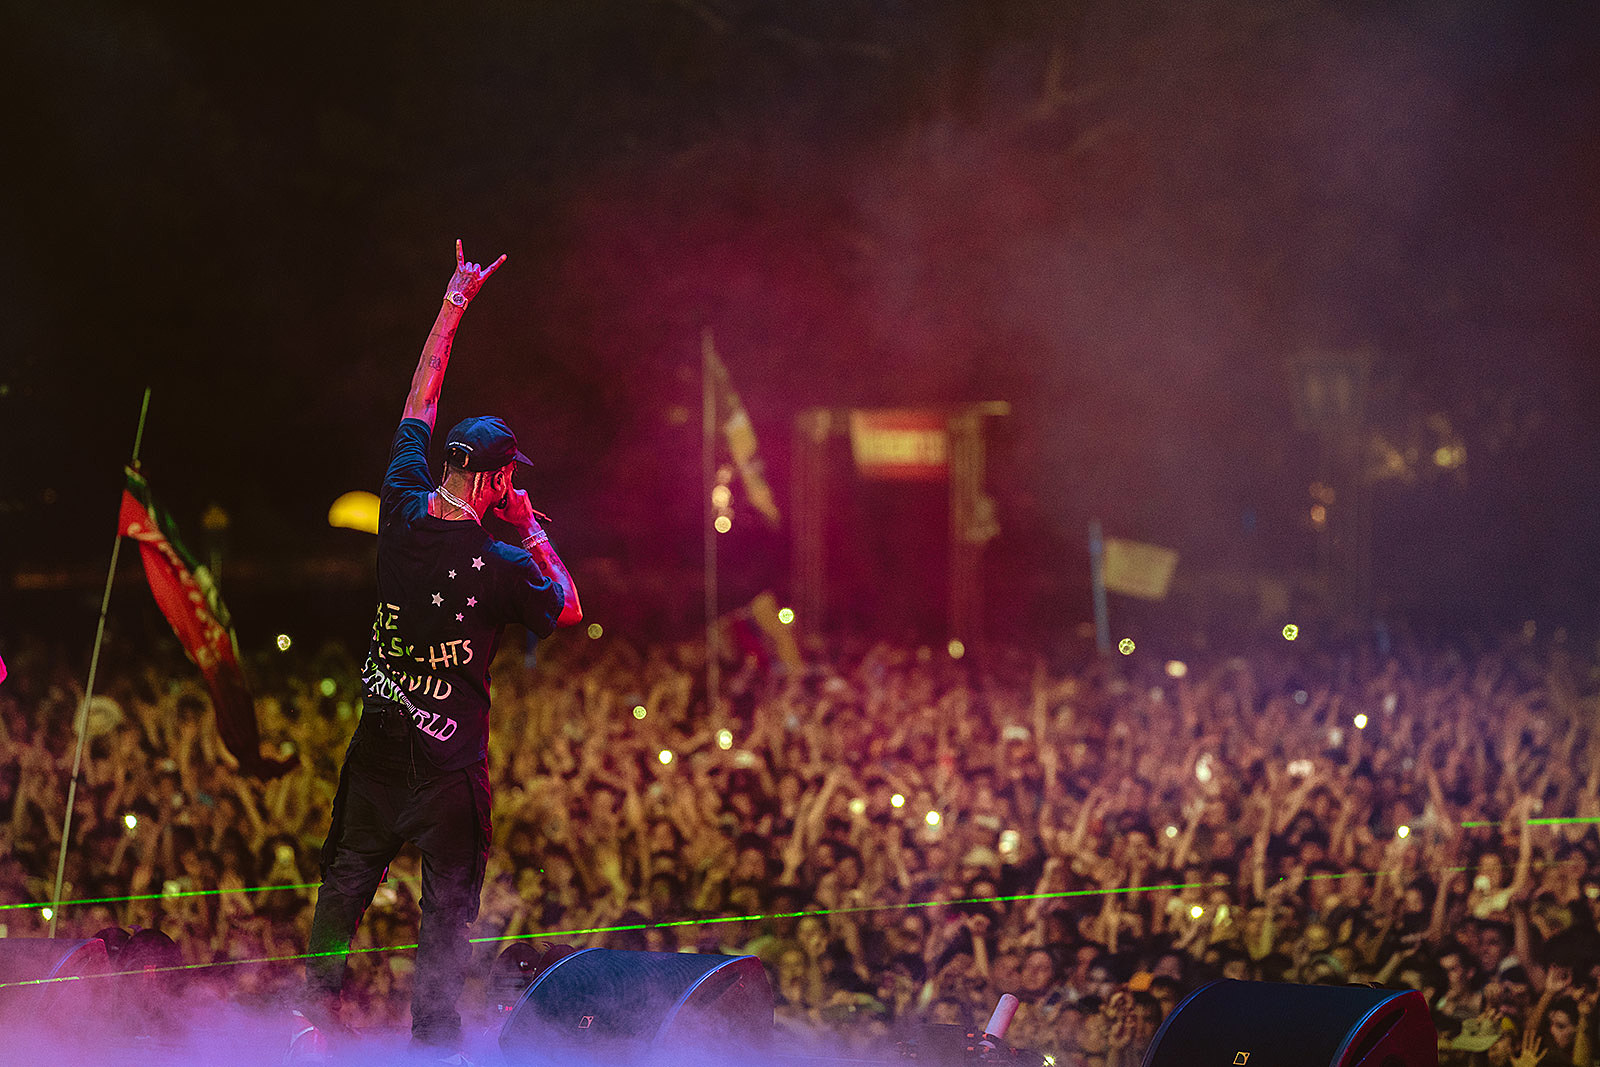 2a83125f4ece Travis Scott announces more Astroworld tour dates, including 2 new NYC shows